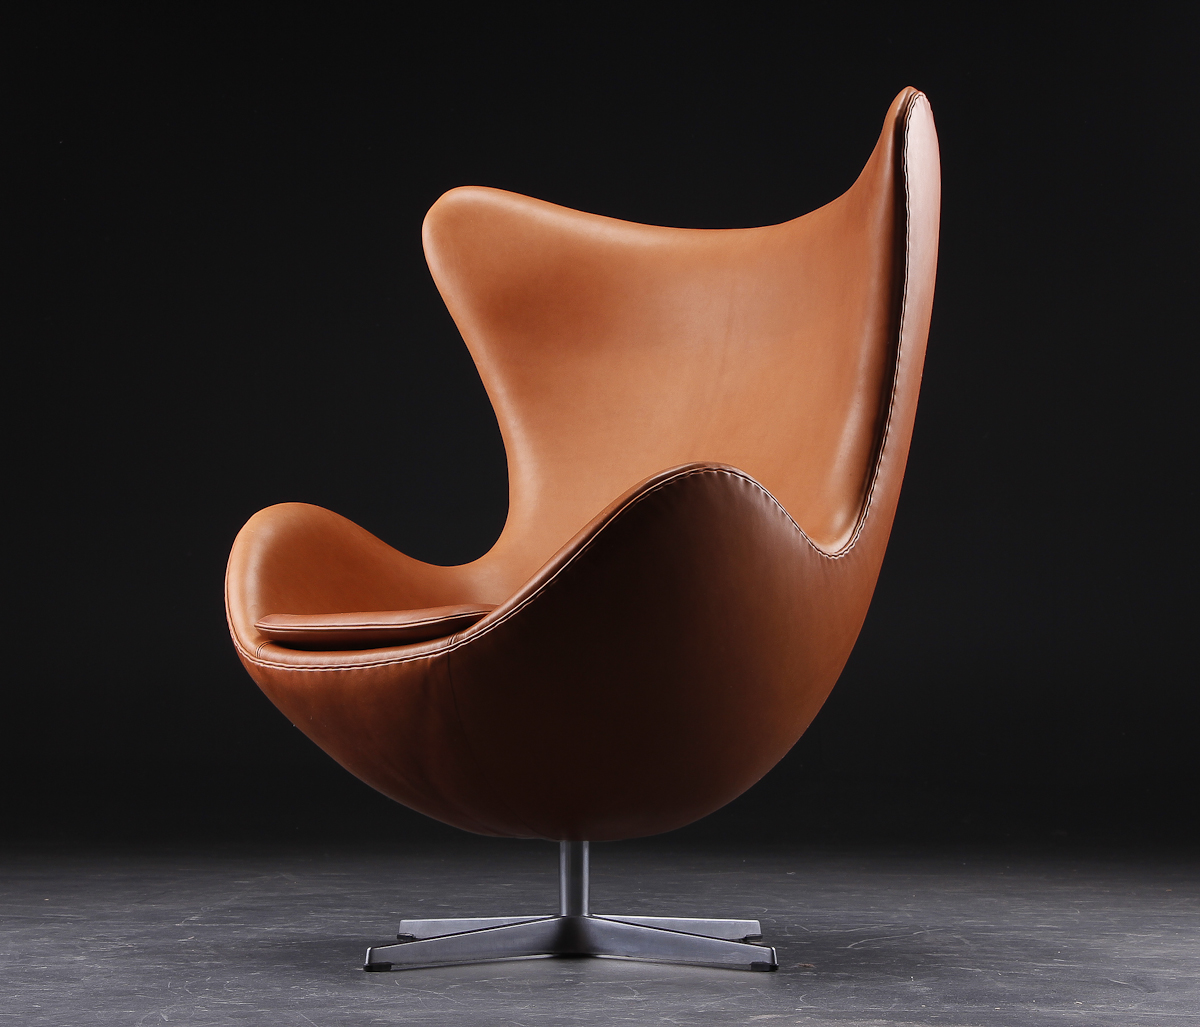 Arne jacobsen egg chair leather - Original Fritz Hansen Scandinavian Modern Leather Lounge Arne Jacobsen Egg Chair